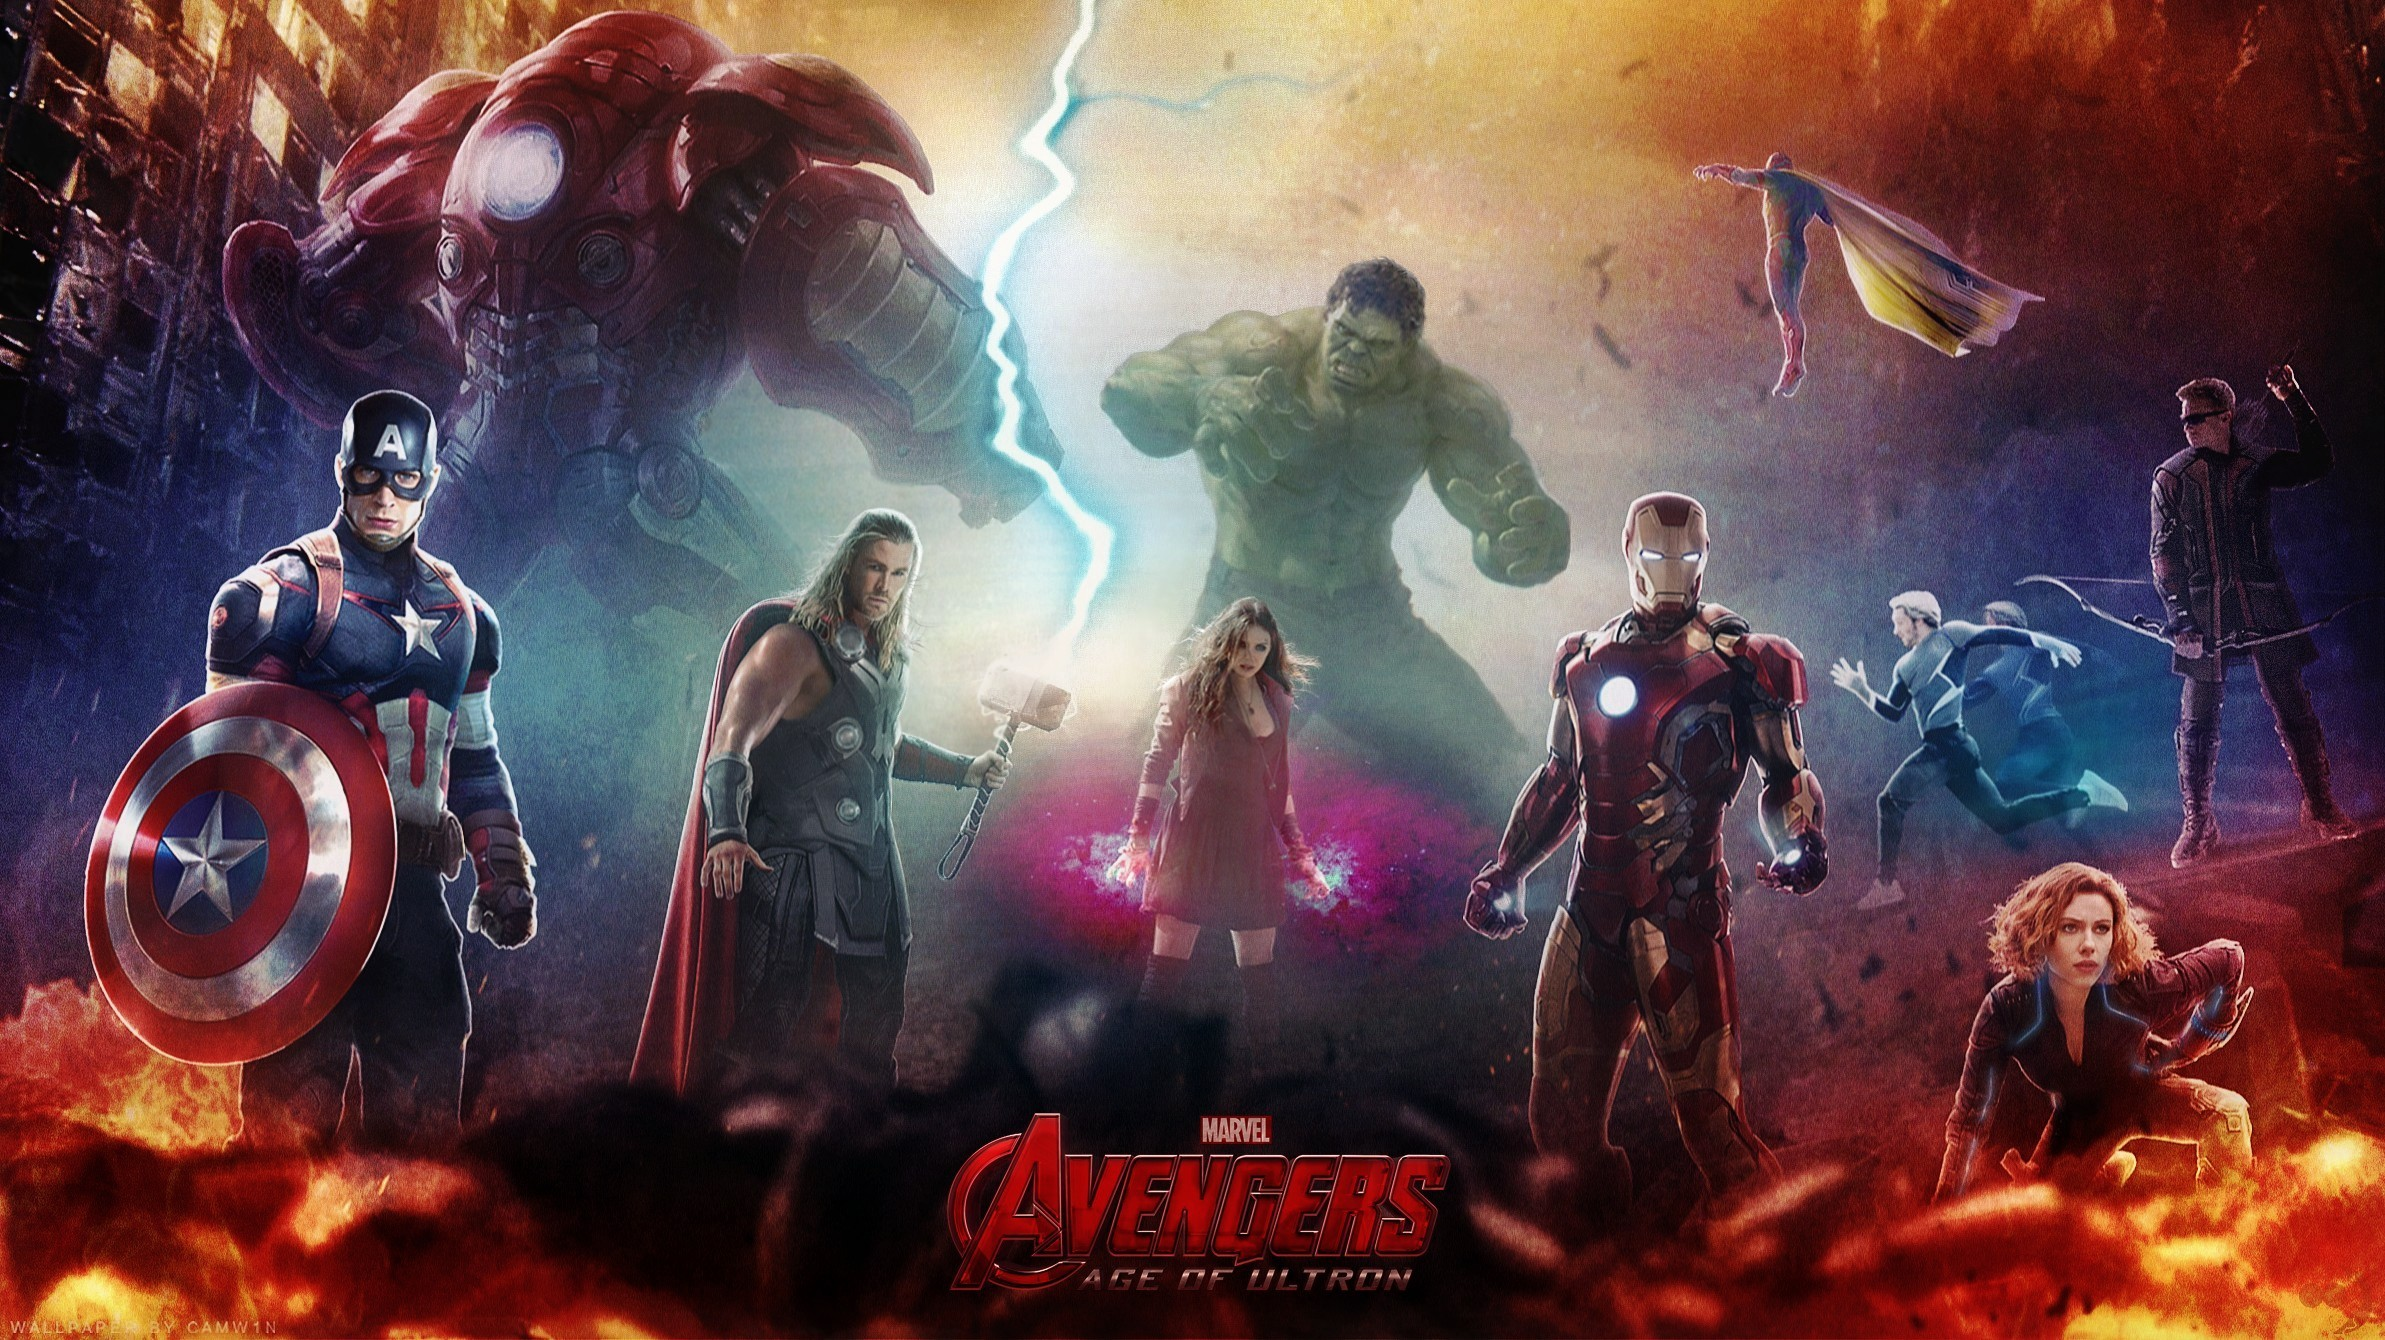 Thor Avengers Age of Ultron Wallpapers HD Wallpapers 2385x1340